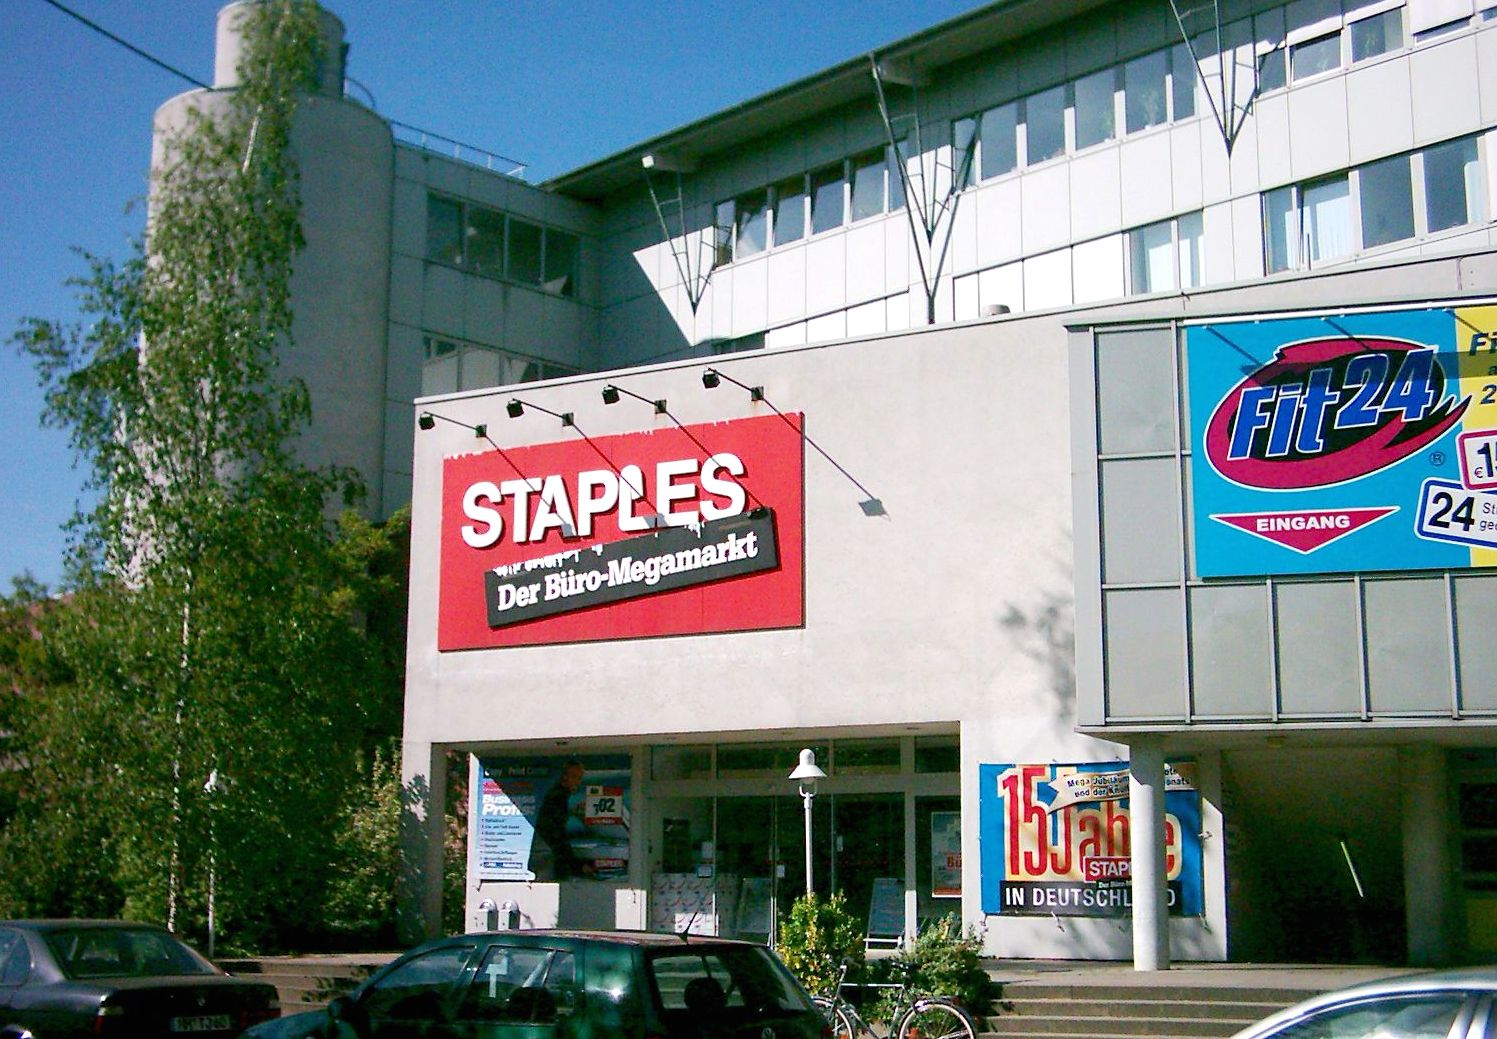 File:Staples Harburg 03.jpg